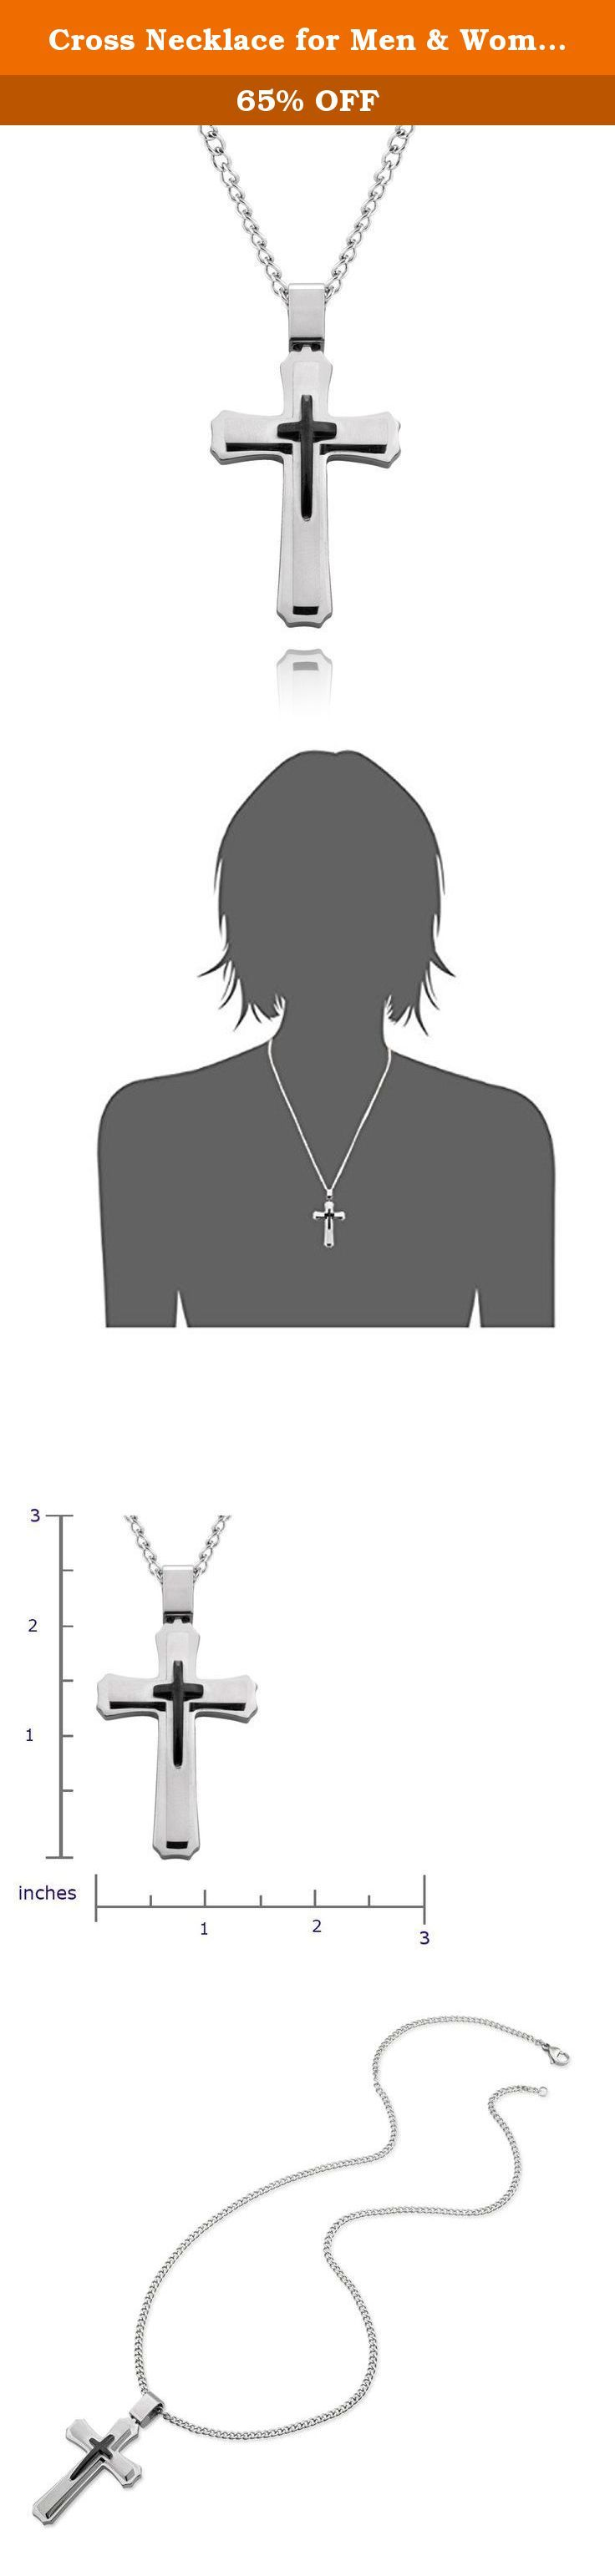 Cross Necklace for Men & Women with Large Pendant and 24 Inch Chain (Silver & Black Tone). Both cross and chain are made from stainless steel. This superior grade of steel does not rust or corrode over time and maintains its lustre even with regular usage. The Pendant measures 1.9 height x 1.2 width x 0.2 thick. The stainless steel chain is 24 inches in length with a lobster claw fastener. The exquisite large men's cross pendant is solid and 3 dimensional; the overall effect is a tribute…